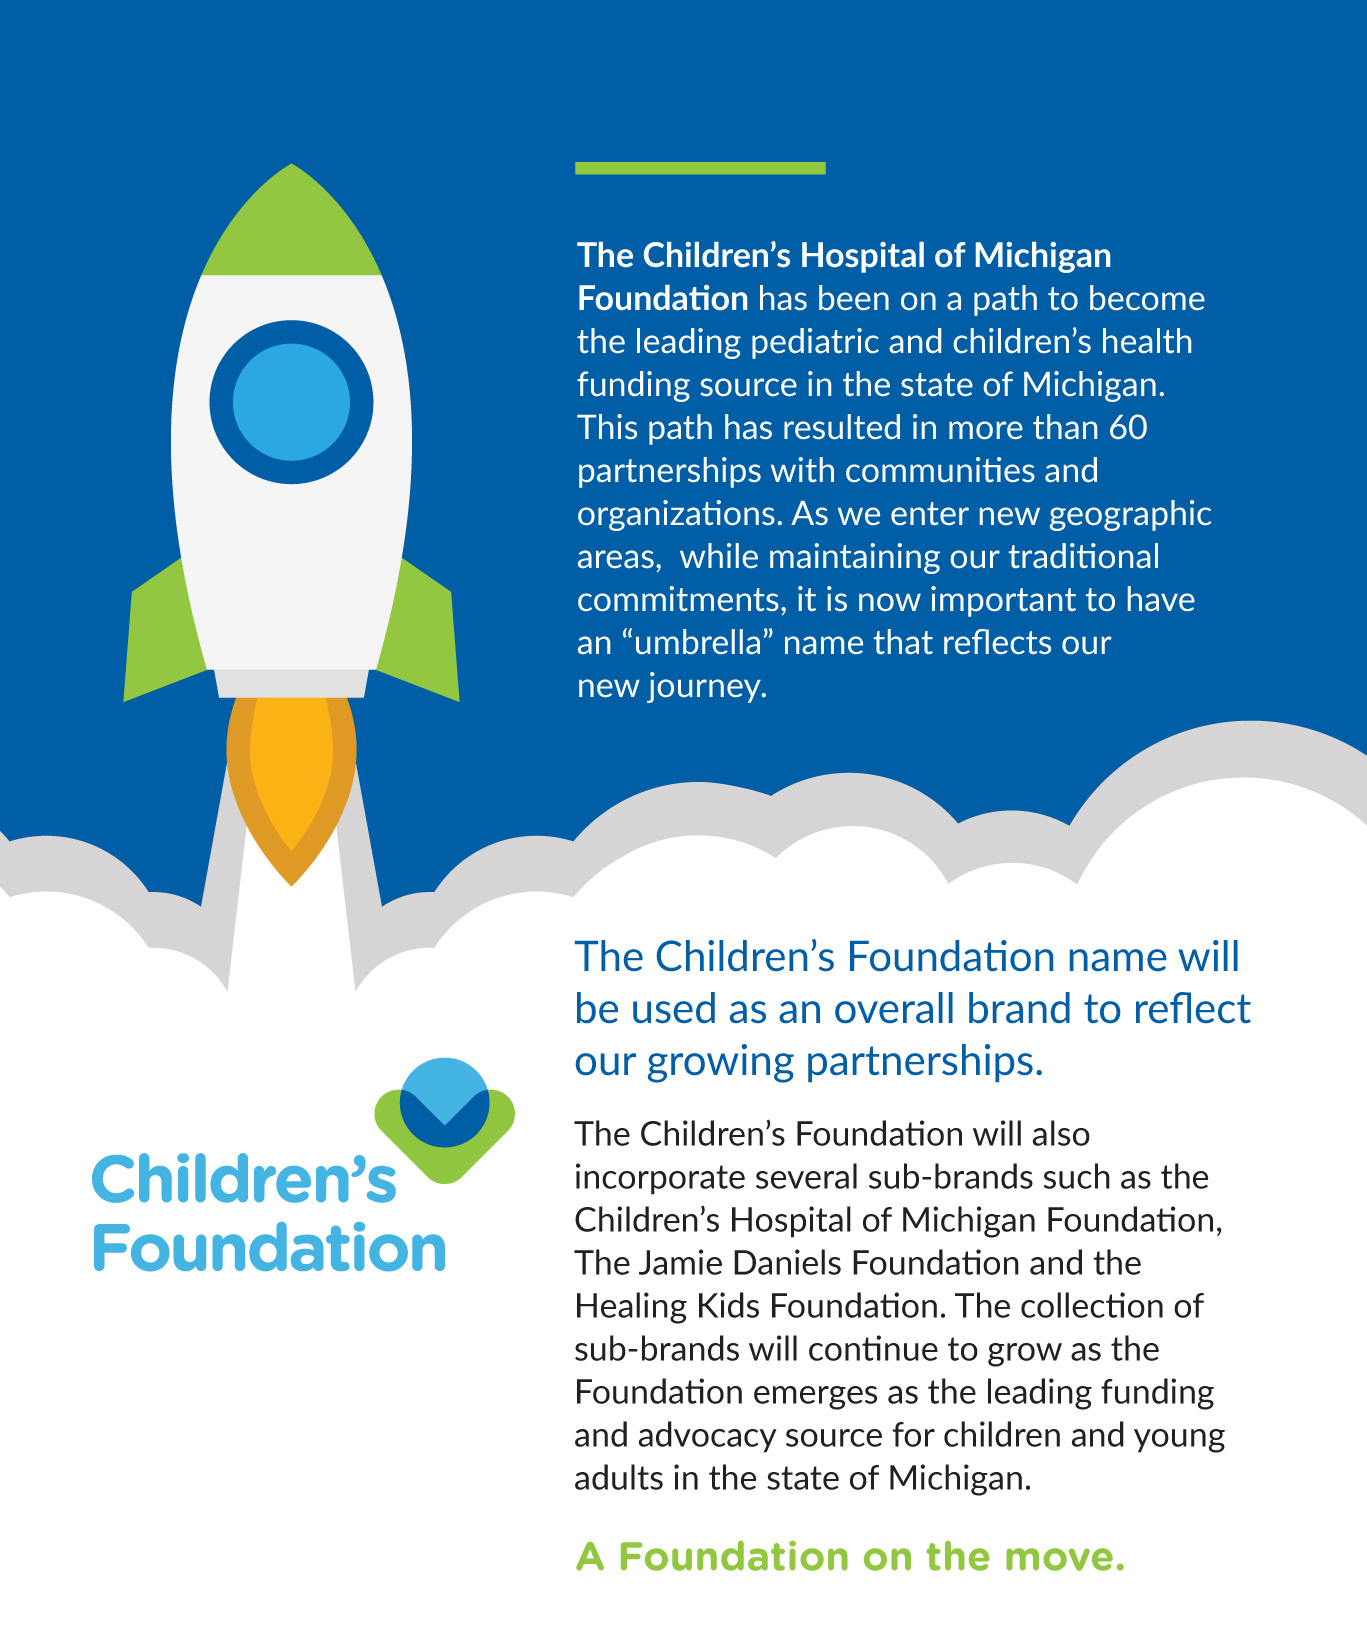 The Children's Foundation – The Children's Foundation